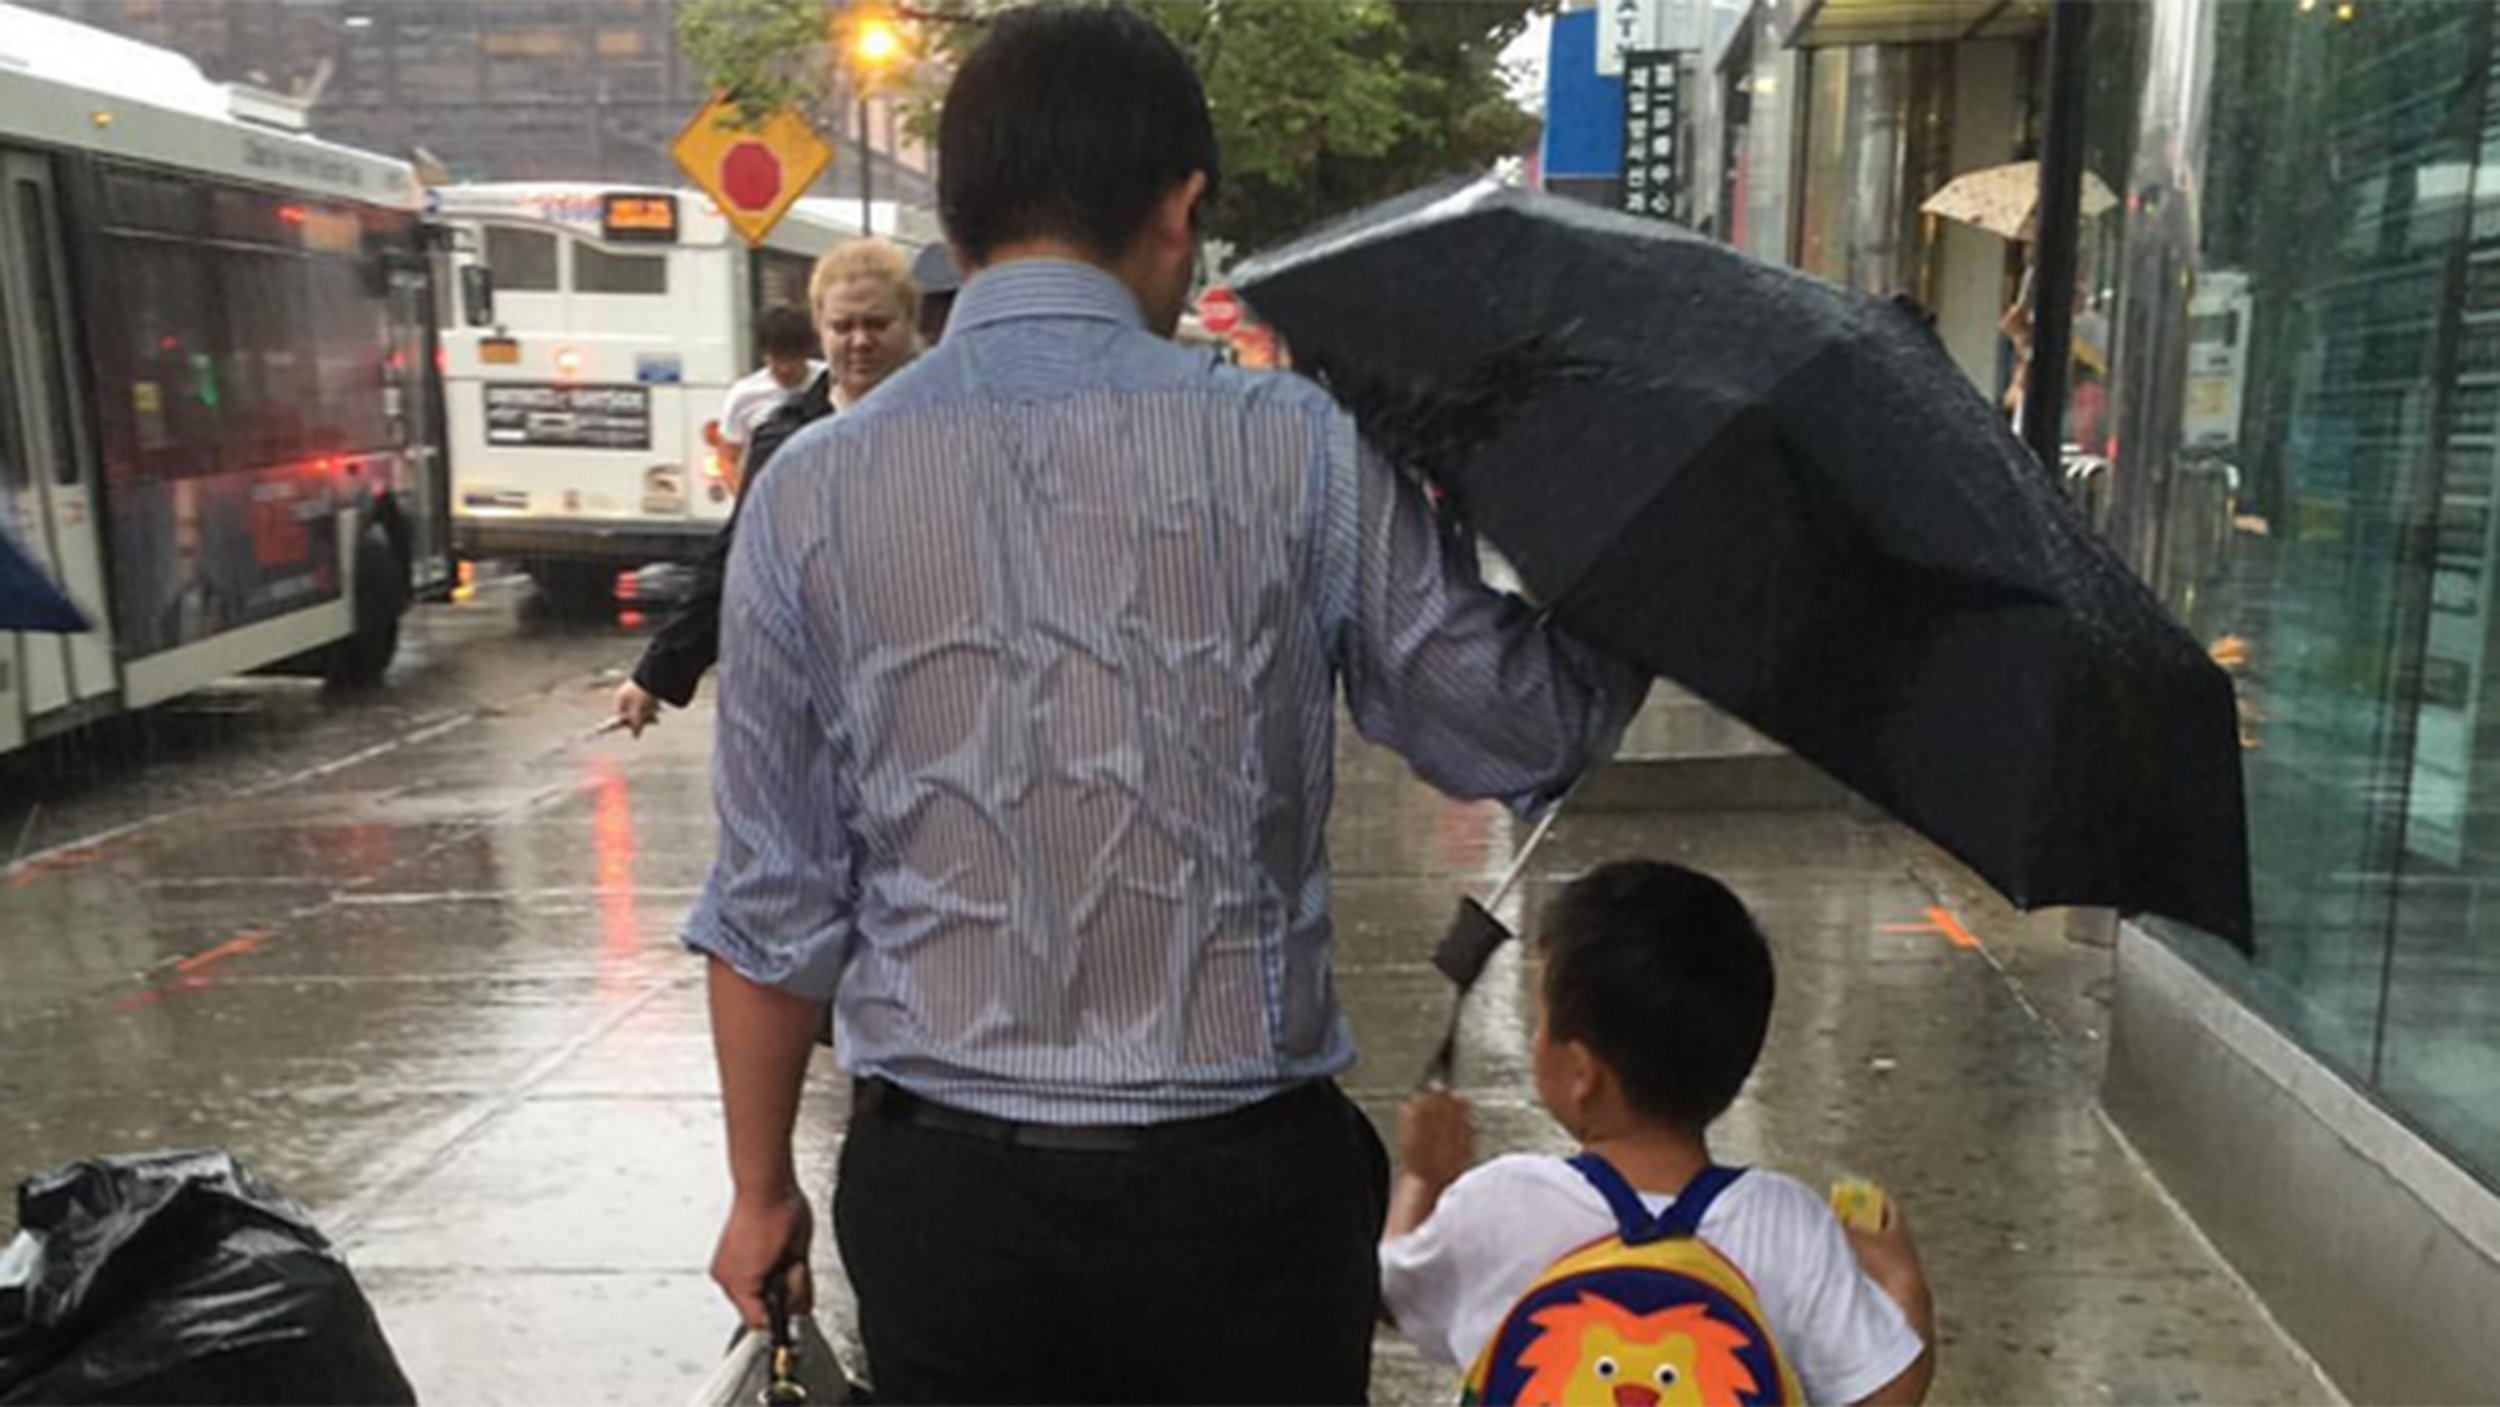 dad-holds-umbrella-today-tease-1-150914_787a932e0b59a53eb03e290710e7ffd2